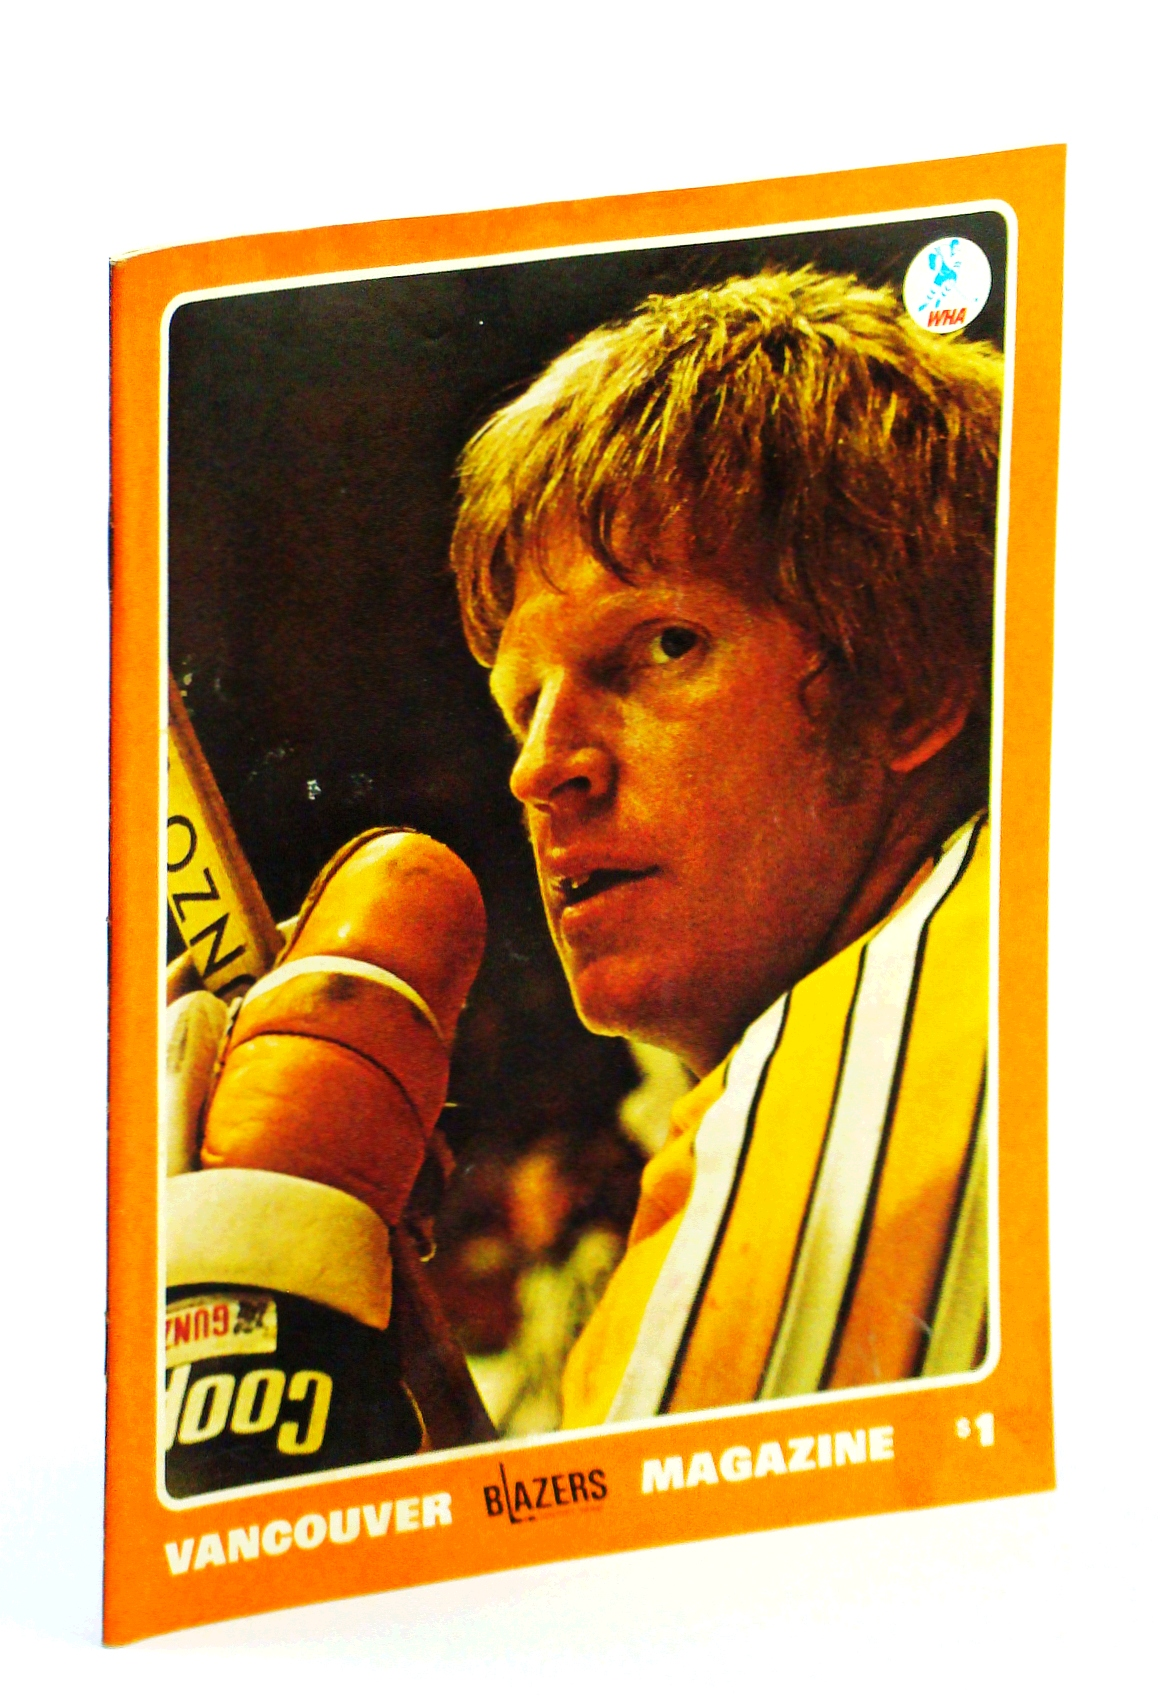 Image for Vancouver Blazers Magazine, Volume II, Issue No. 25, February 5, 1975 : Cover Photo of Pat Stapleton